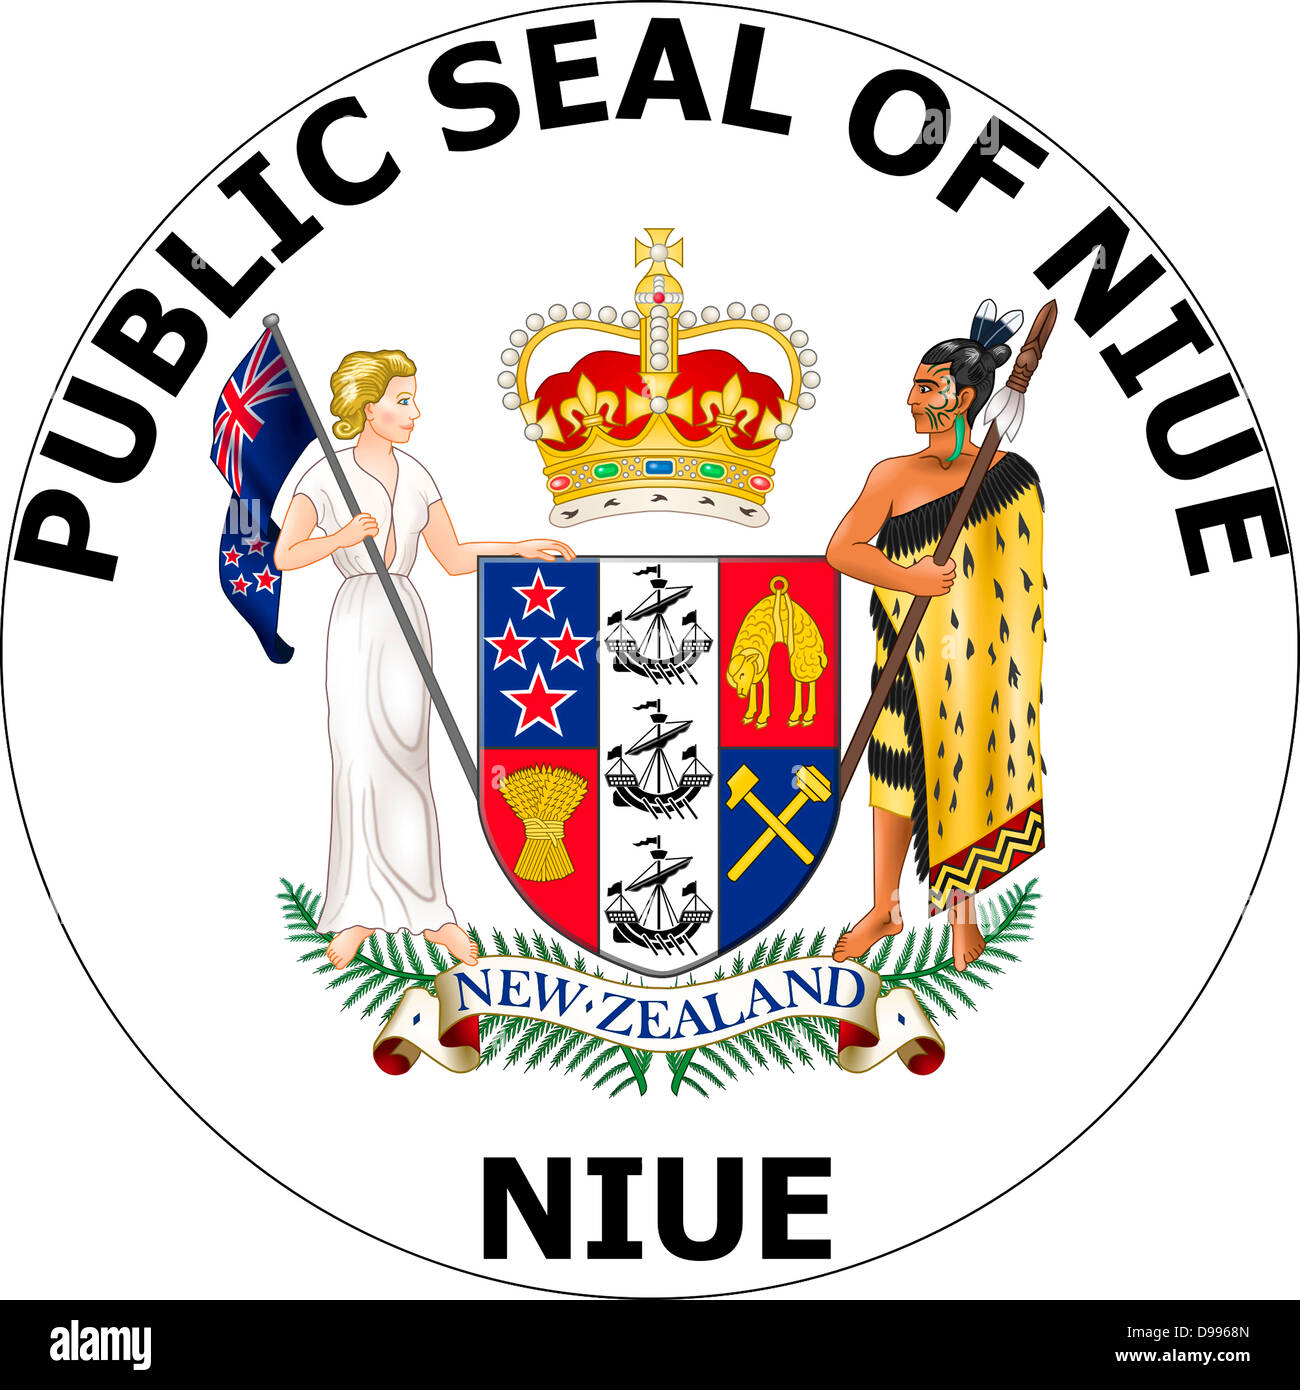 Seal of the island Niue in the South Pacific Ocean. - Stock Image